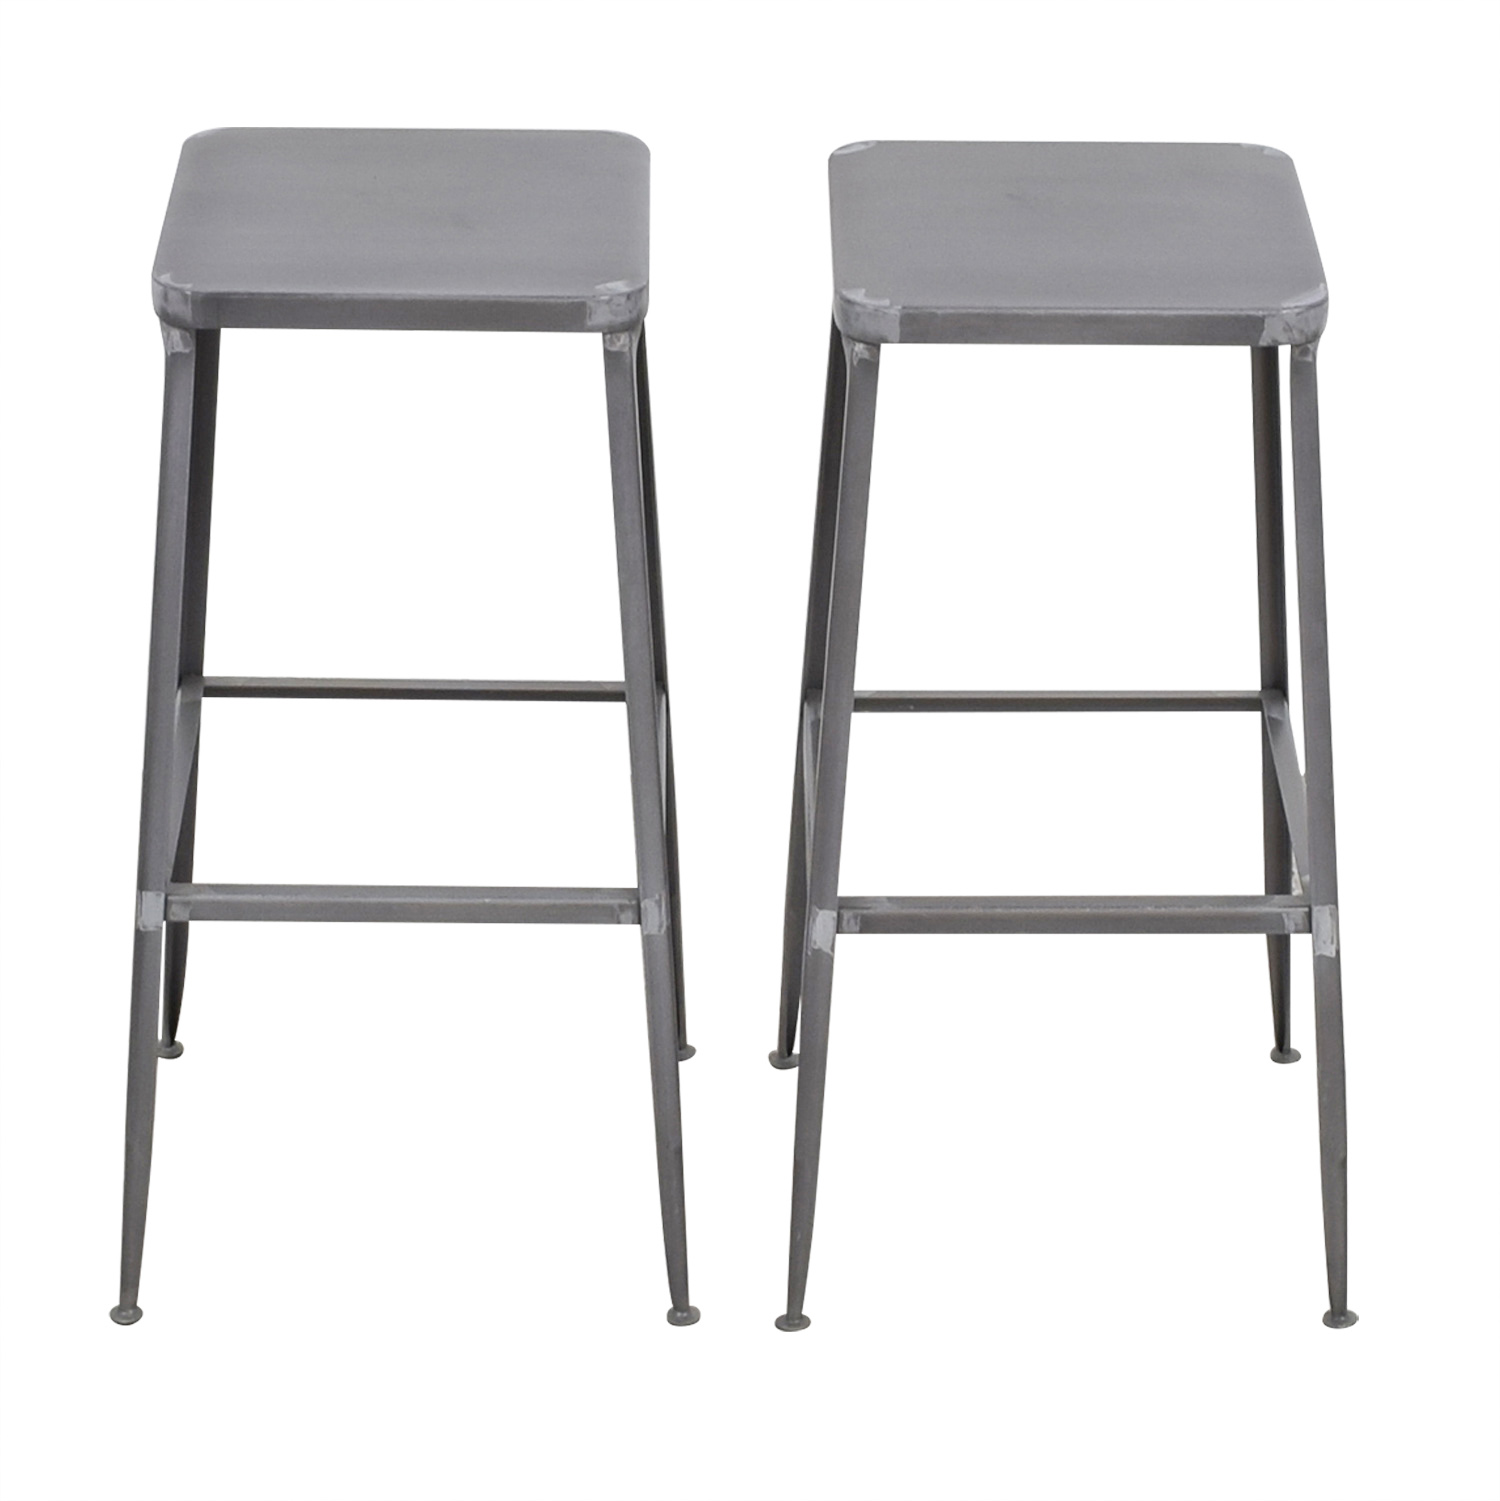 74 Off Cb2 Cb2 Flint Steel Bar Stools Tables